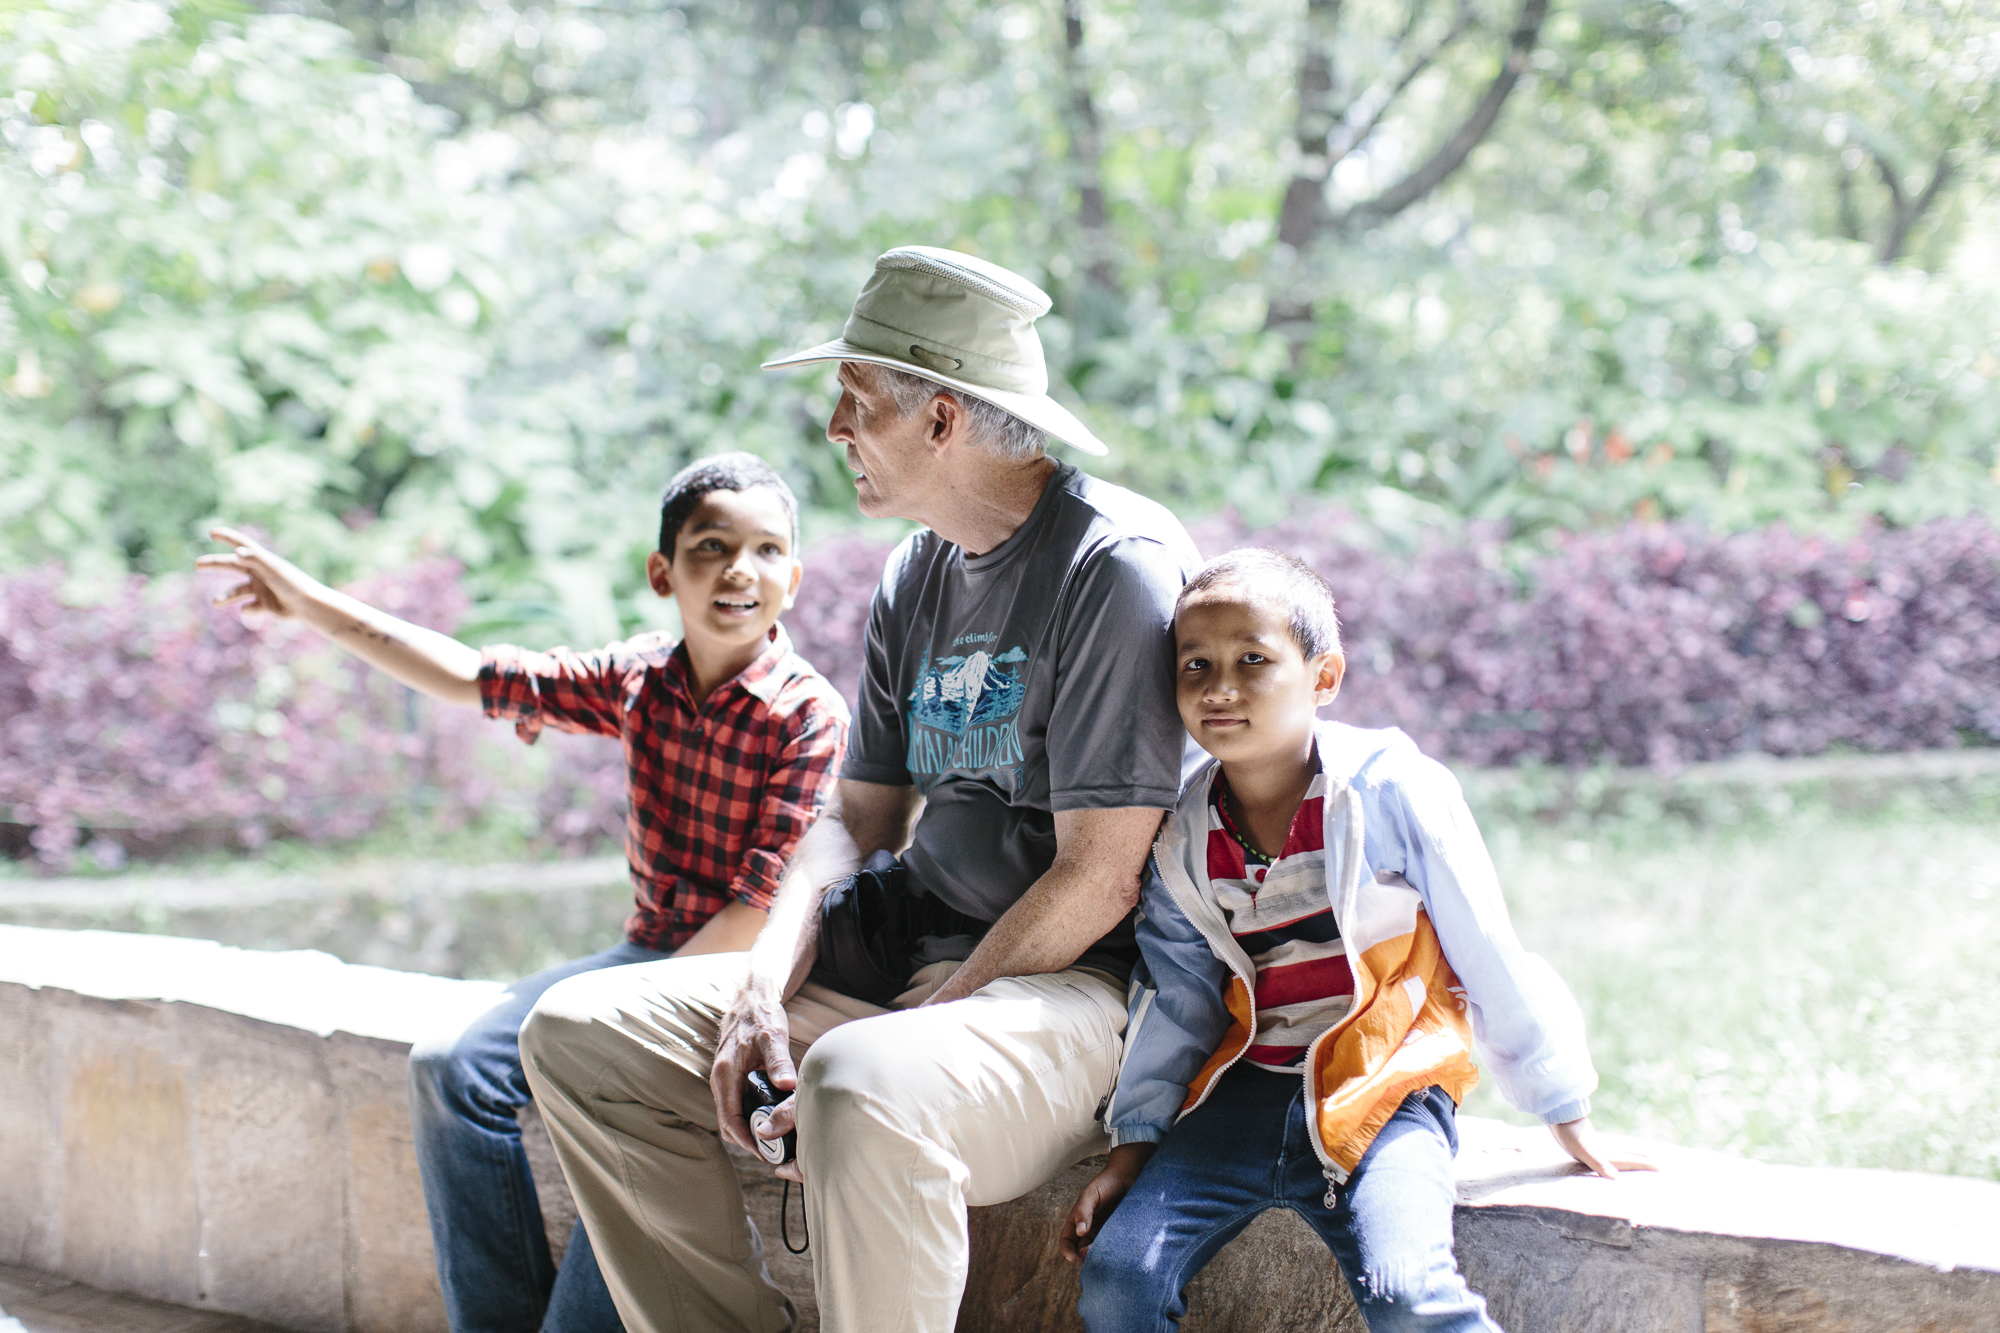 Rick and kids take a break and watch the animals at the Zoo